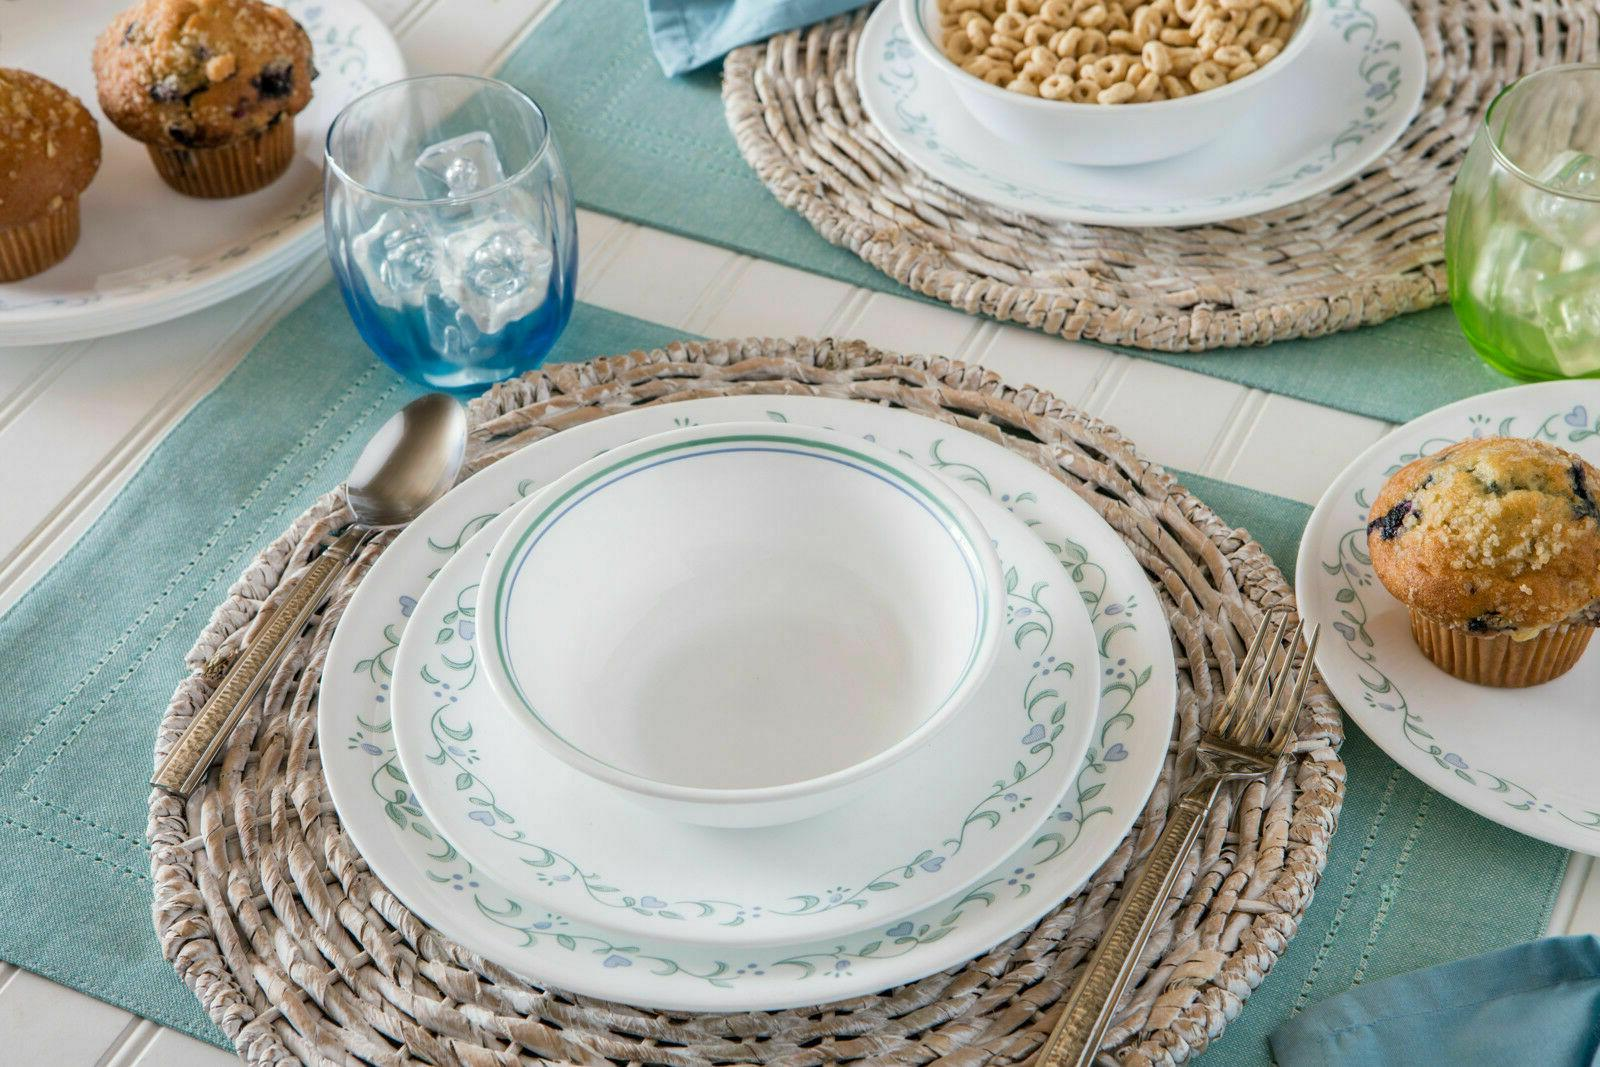 Corelle Dinnerware Set, Suitable Small